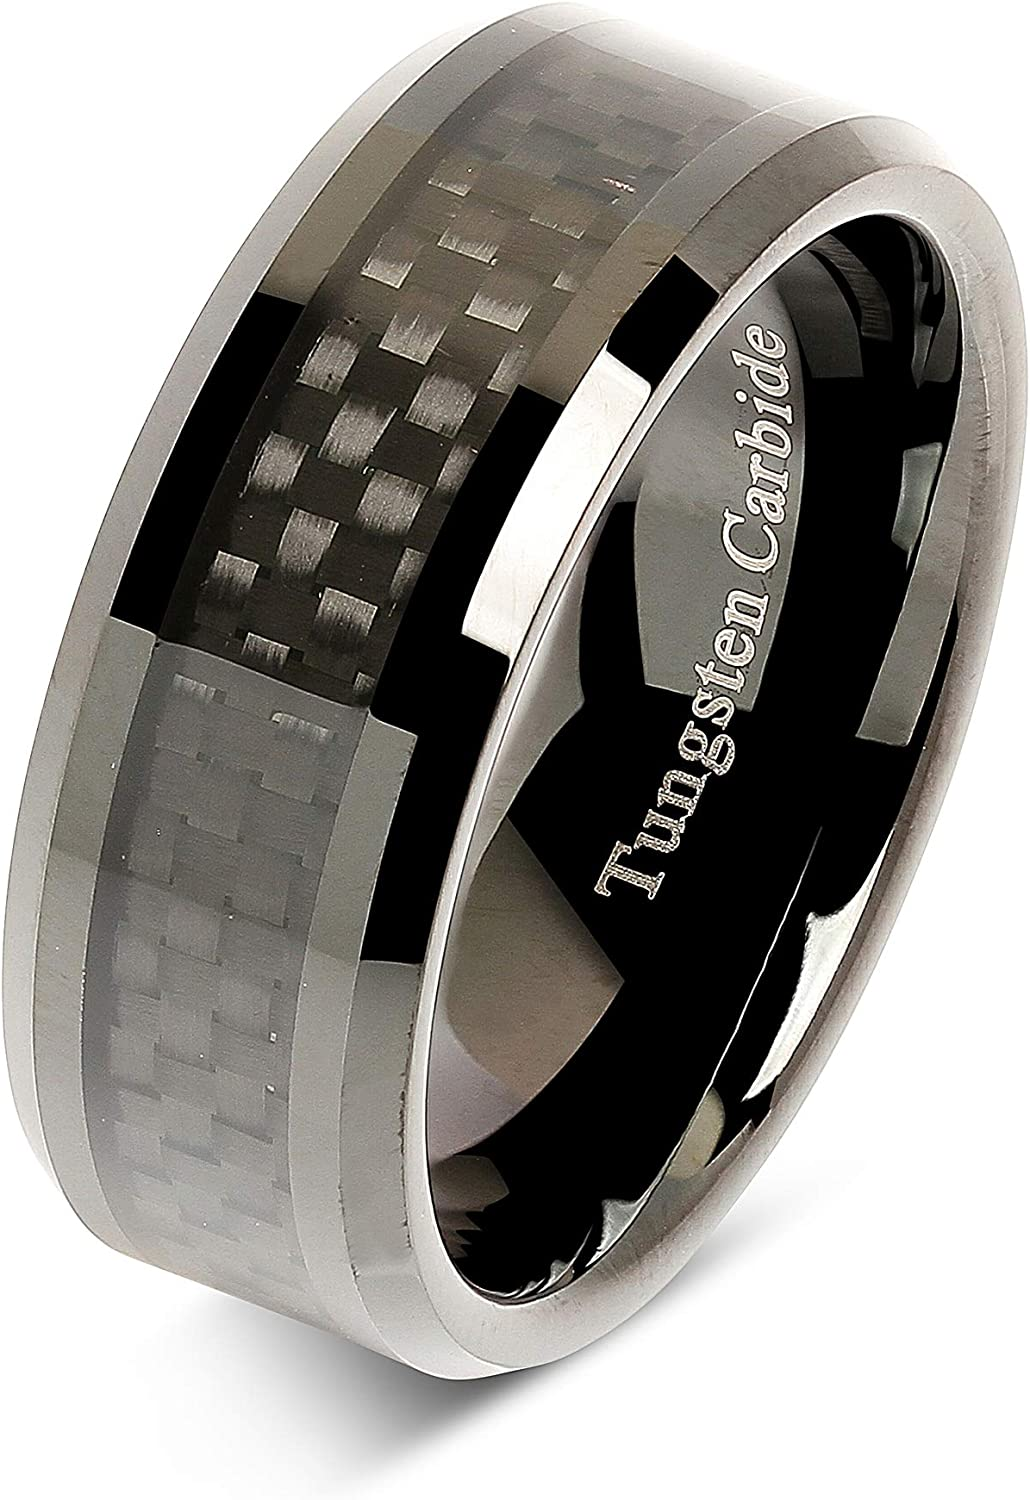 100S JEWELRY 8mm Tungsten Carbide Ring Carbon Fiber Inlay Black Plated Wedding Band Size 6-16